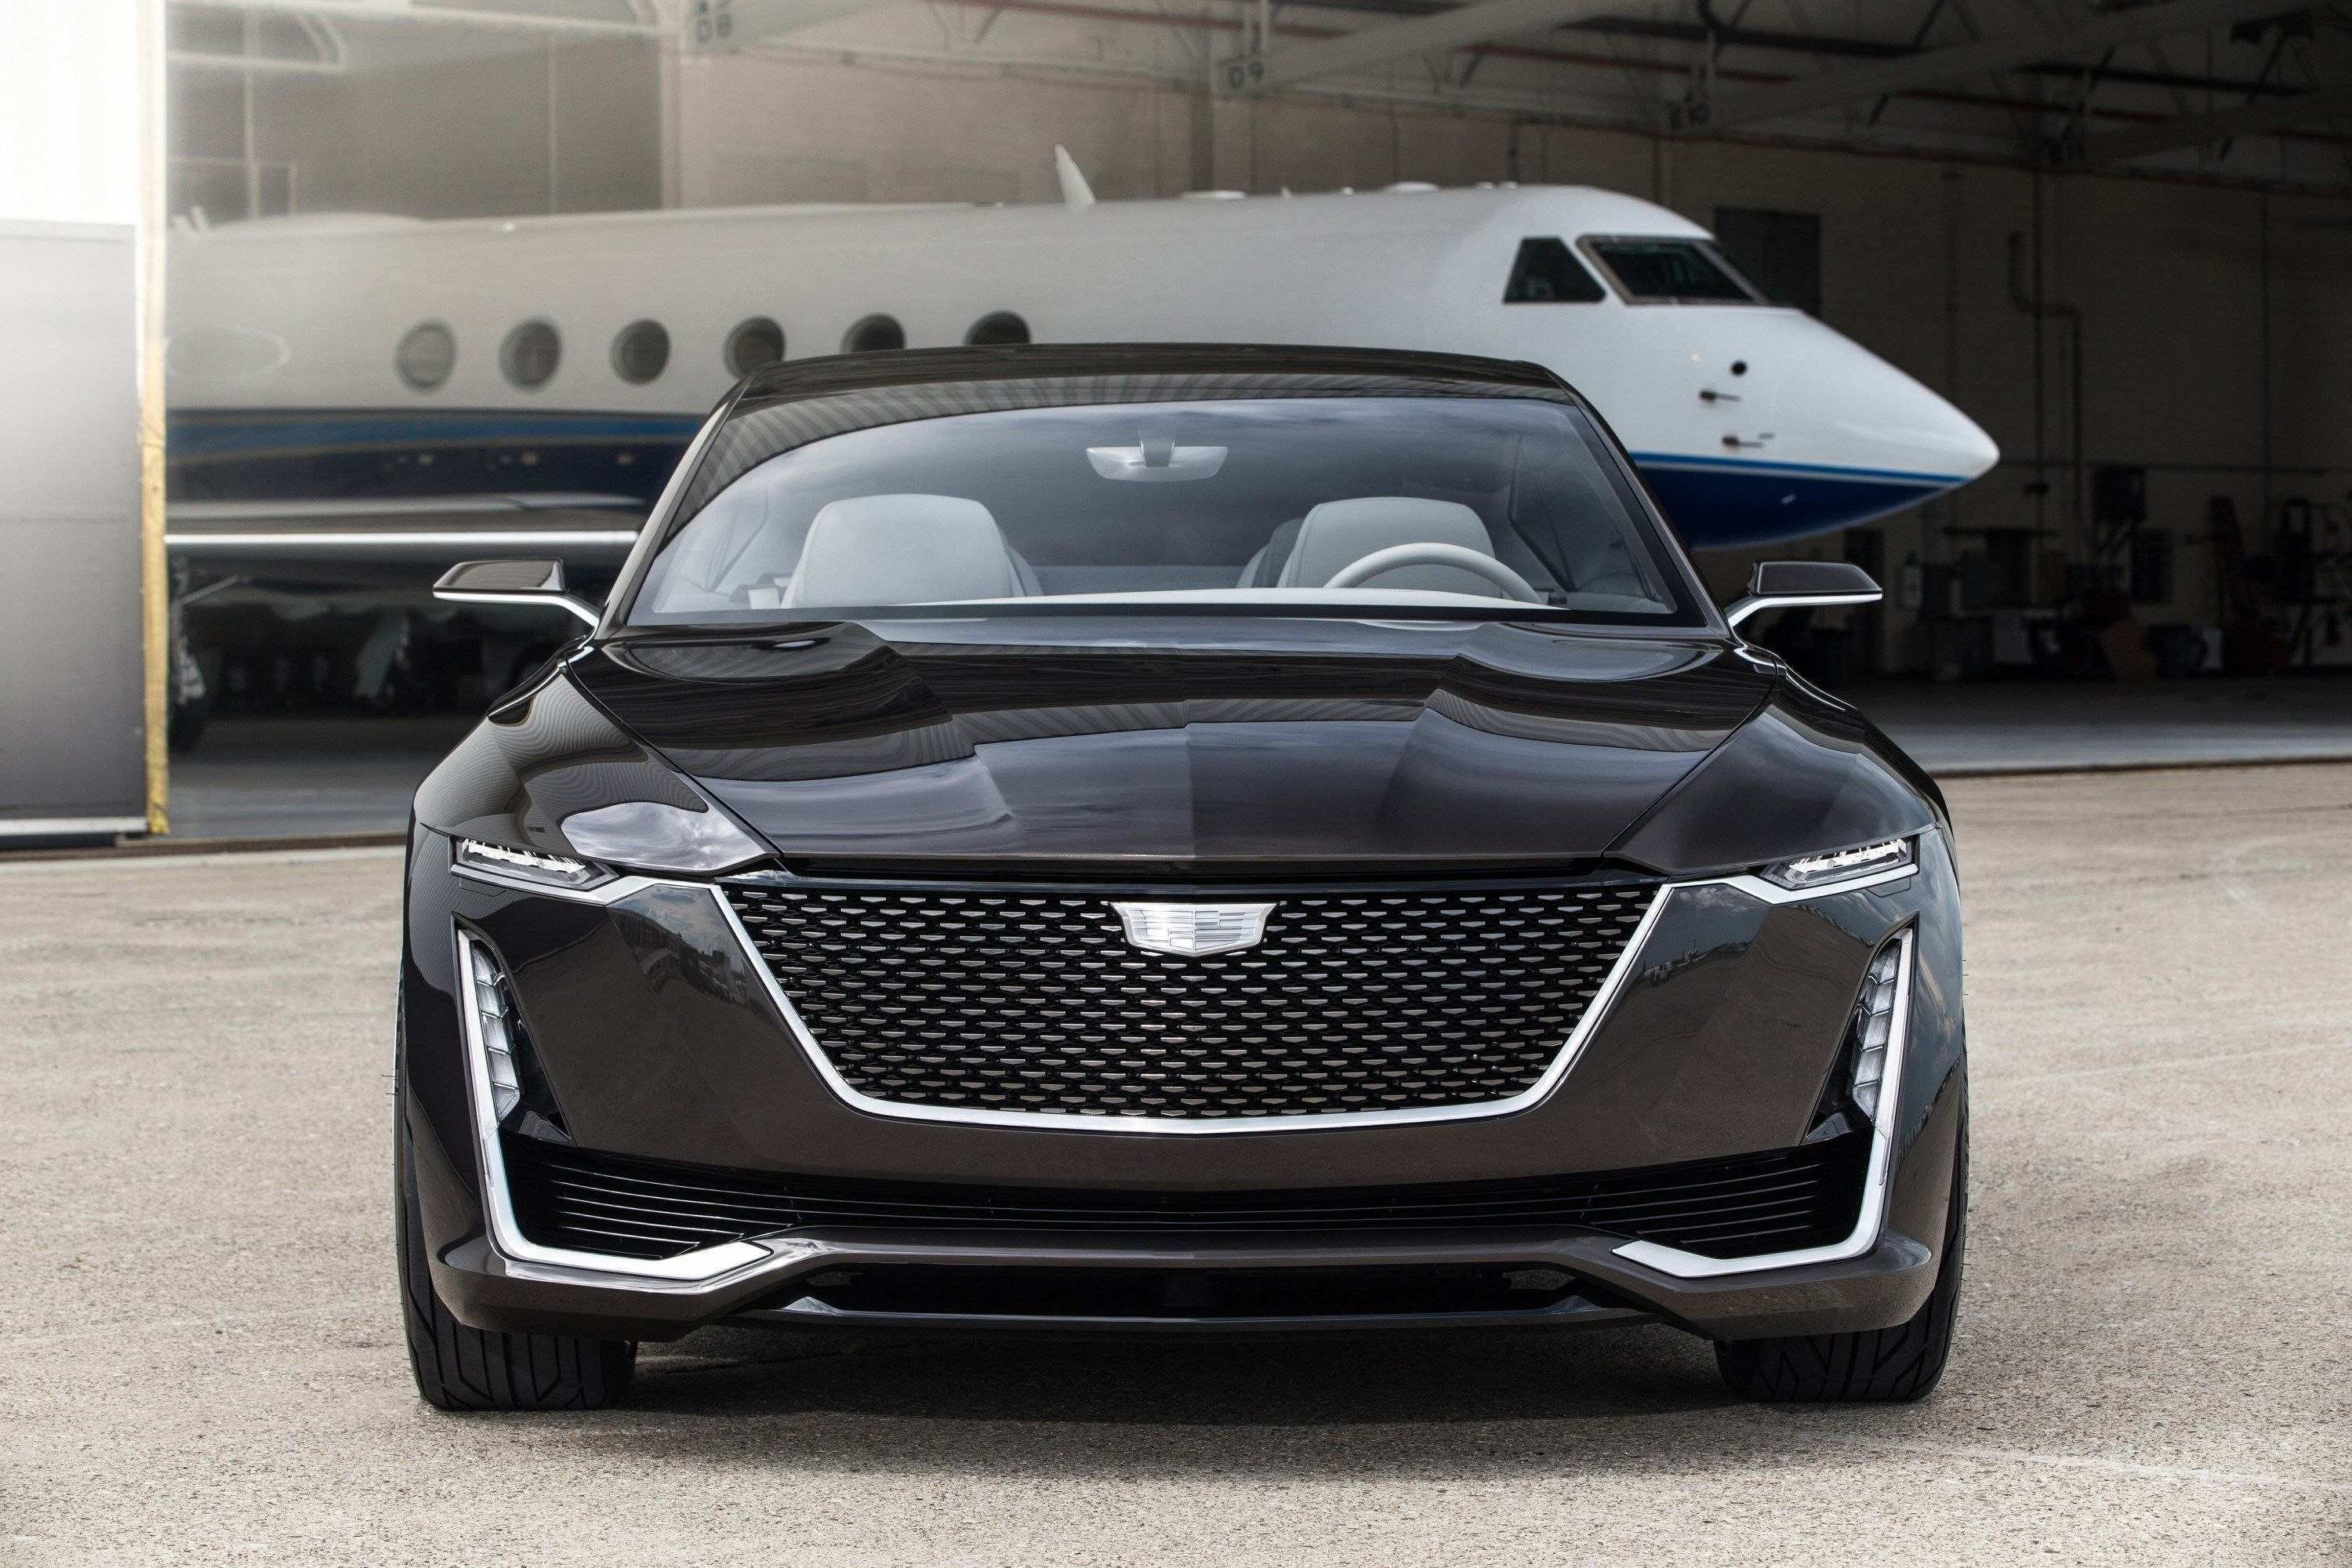 90 The Best 2020 Cadillac Eldorado Images